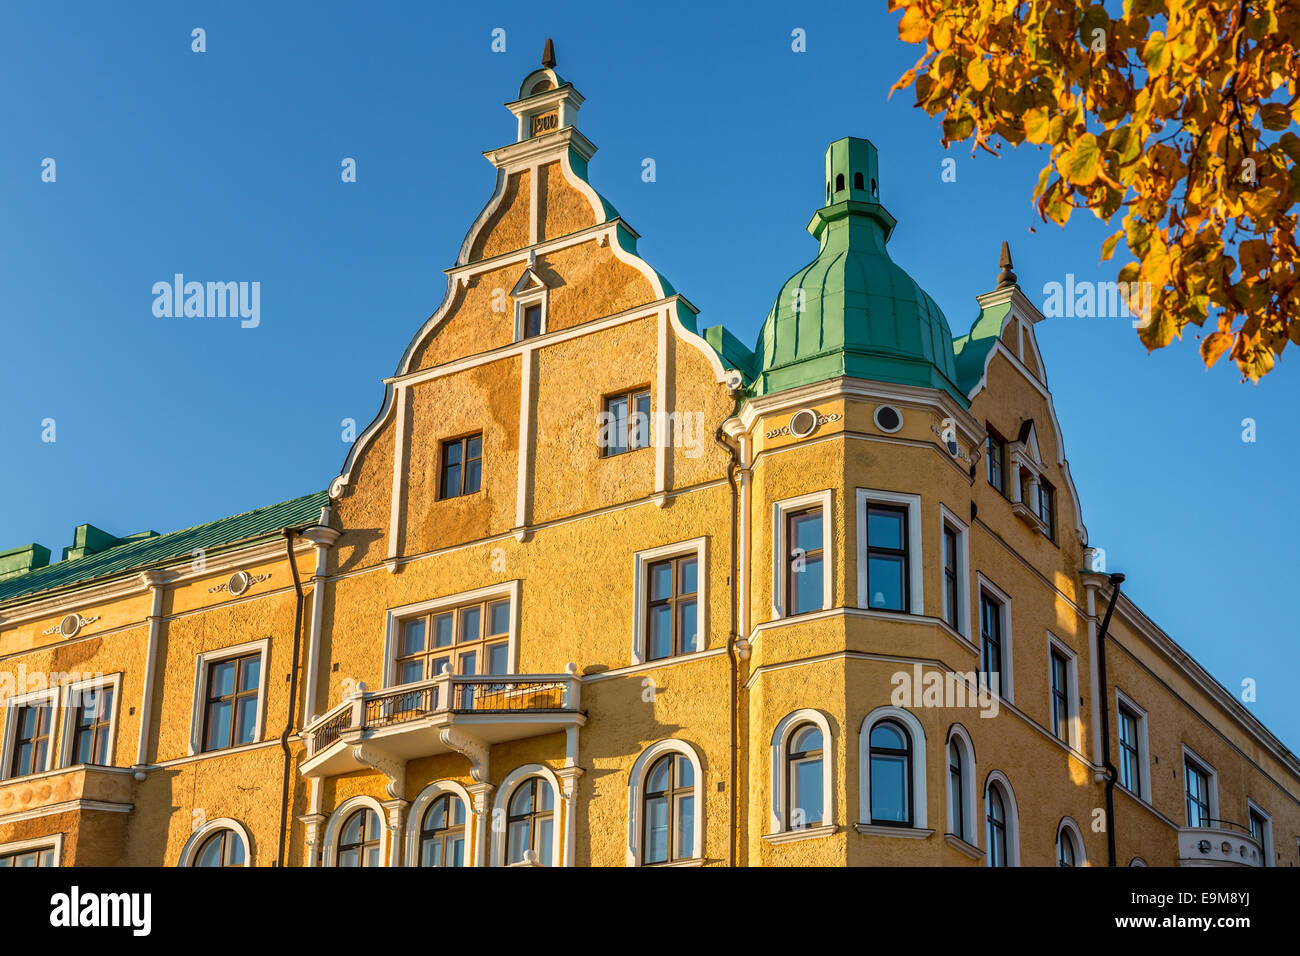 Typical Finnish architecture from around 1900, Art Nouveau, Helsinki, Finland - Stock Image